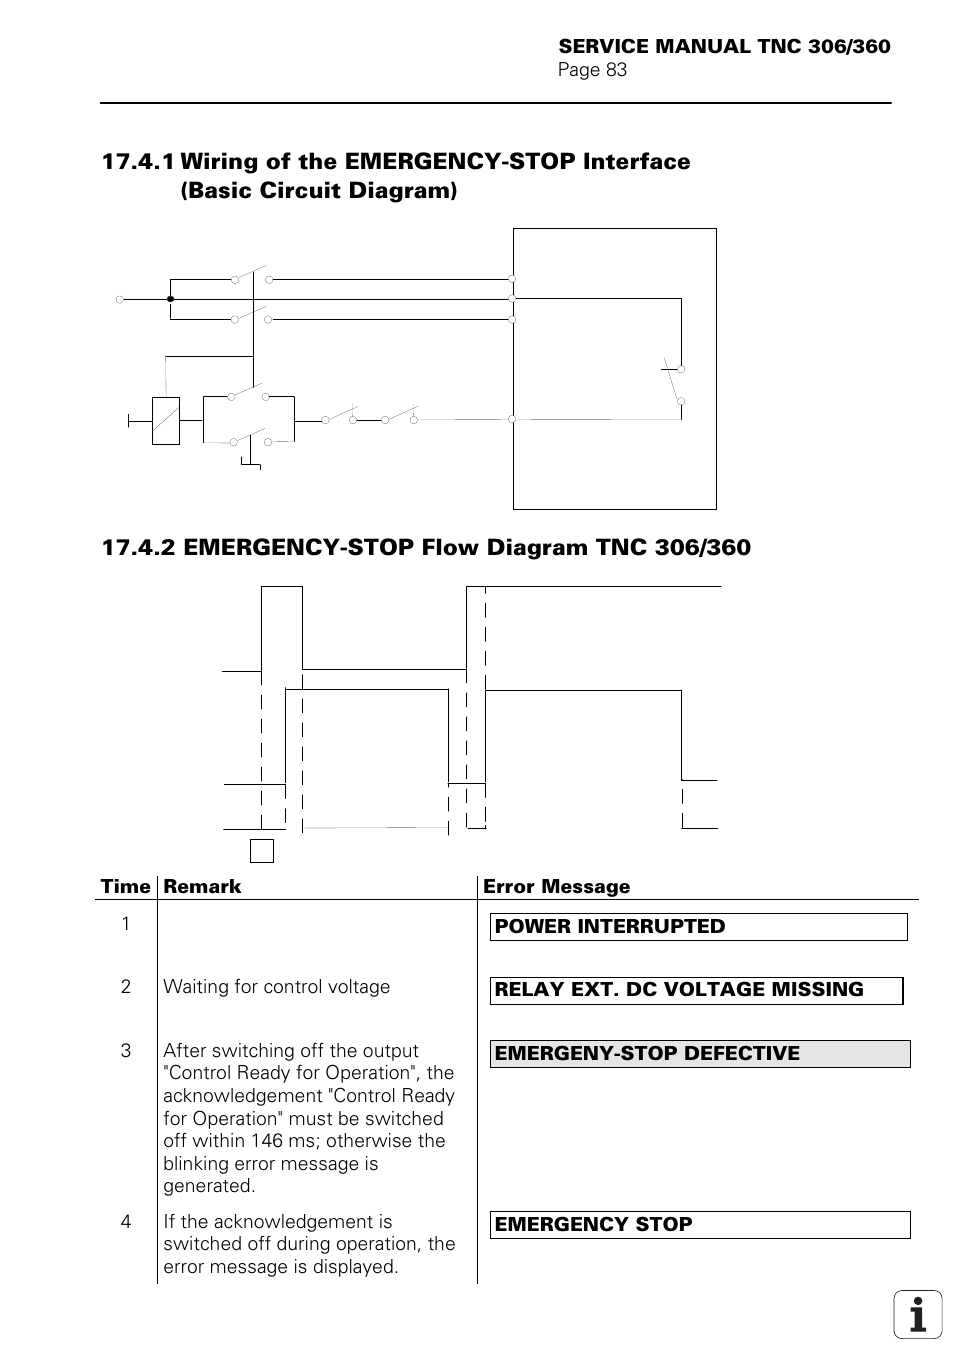 Tnc Switch Wiring Diagram Free Download Ug412rmw250p Emergency Stop Relay Ext Dc Voltage Missing Heidenhain 306